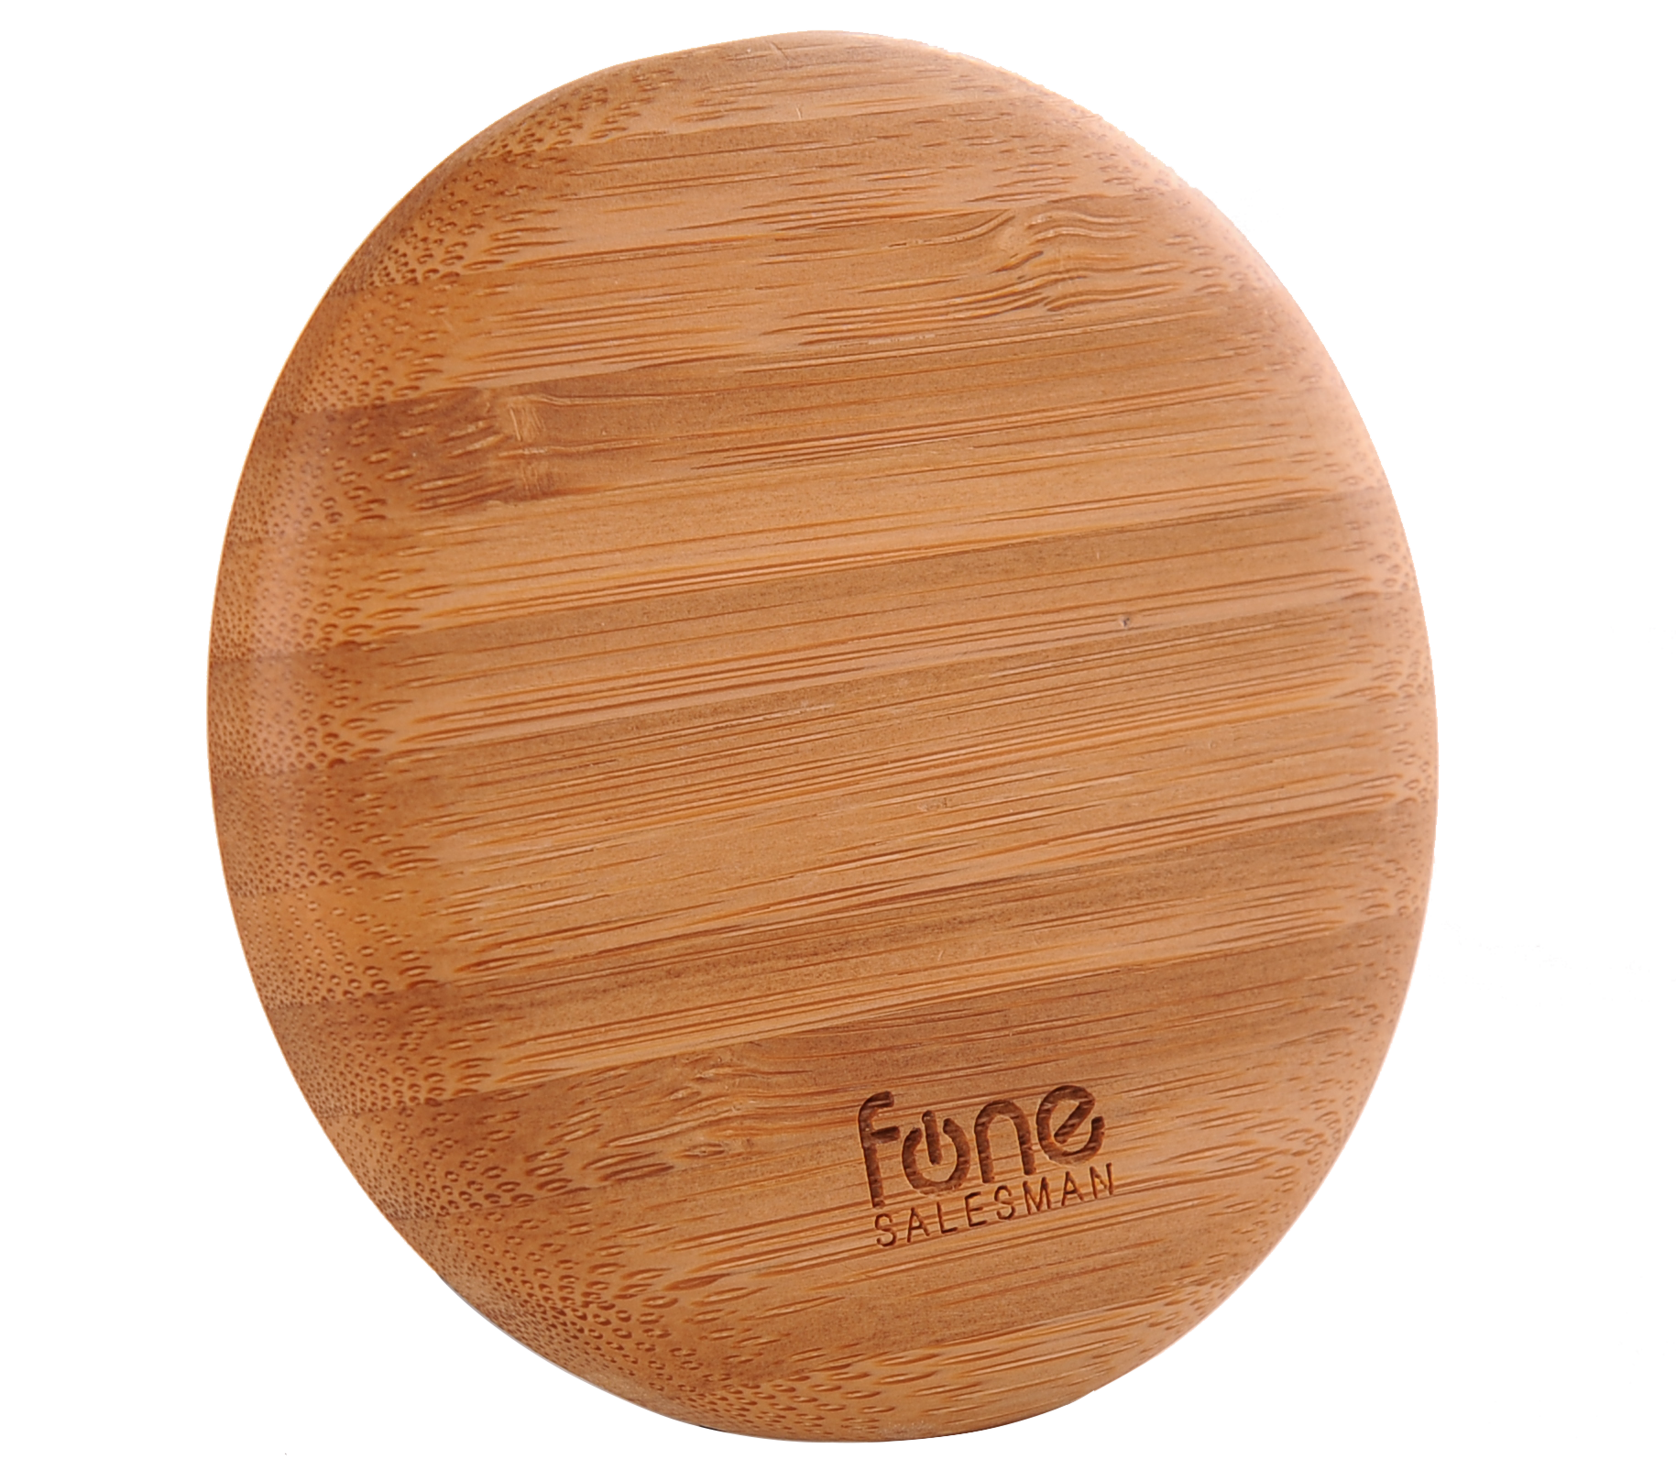 ... WoodPuck: Bamboo Edition Wireless Charger - Fonesalesman - 4 ...